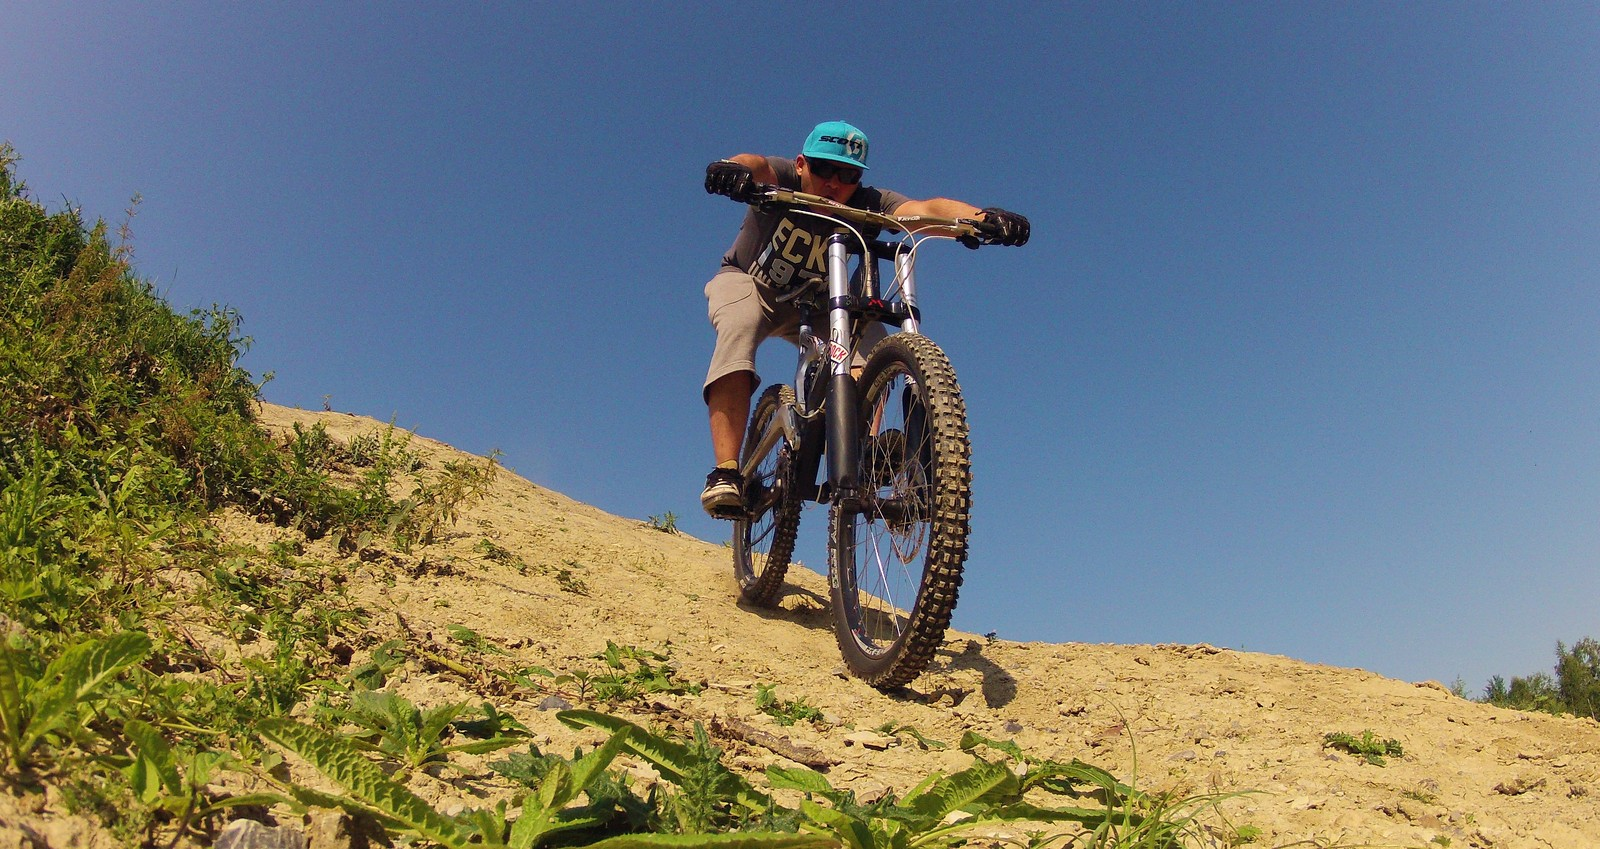 Great riding day - maciek.olbinski - Mountain Biking Pictures - Vital MTB